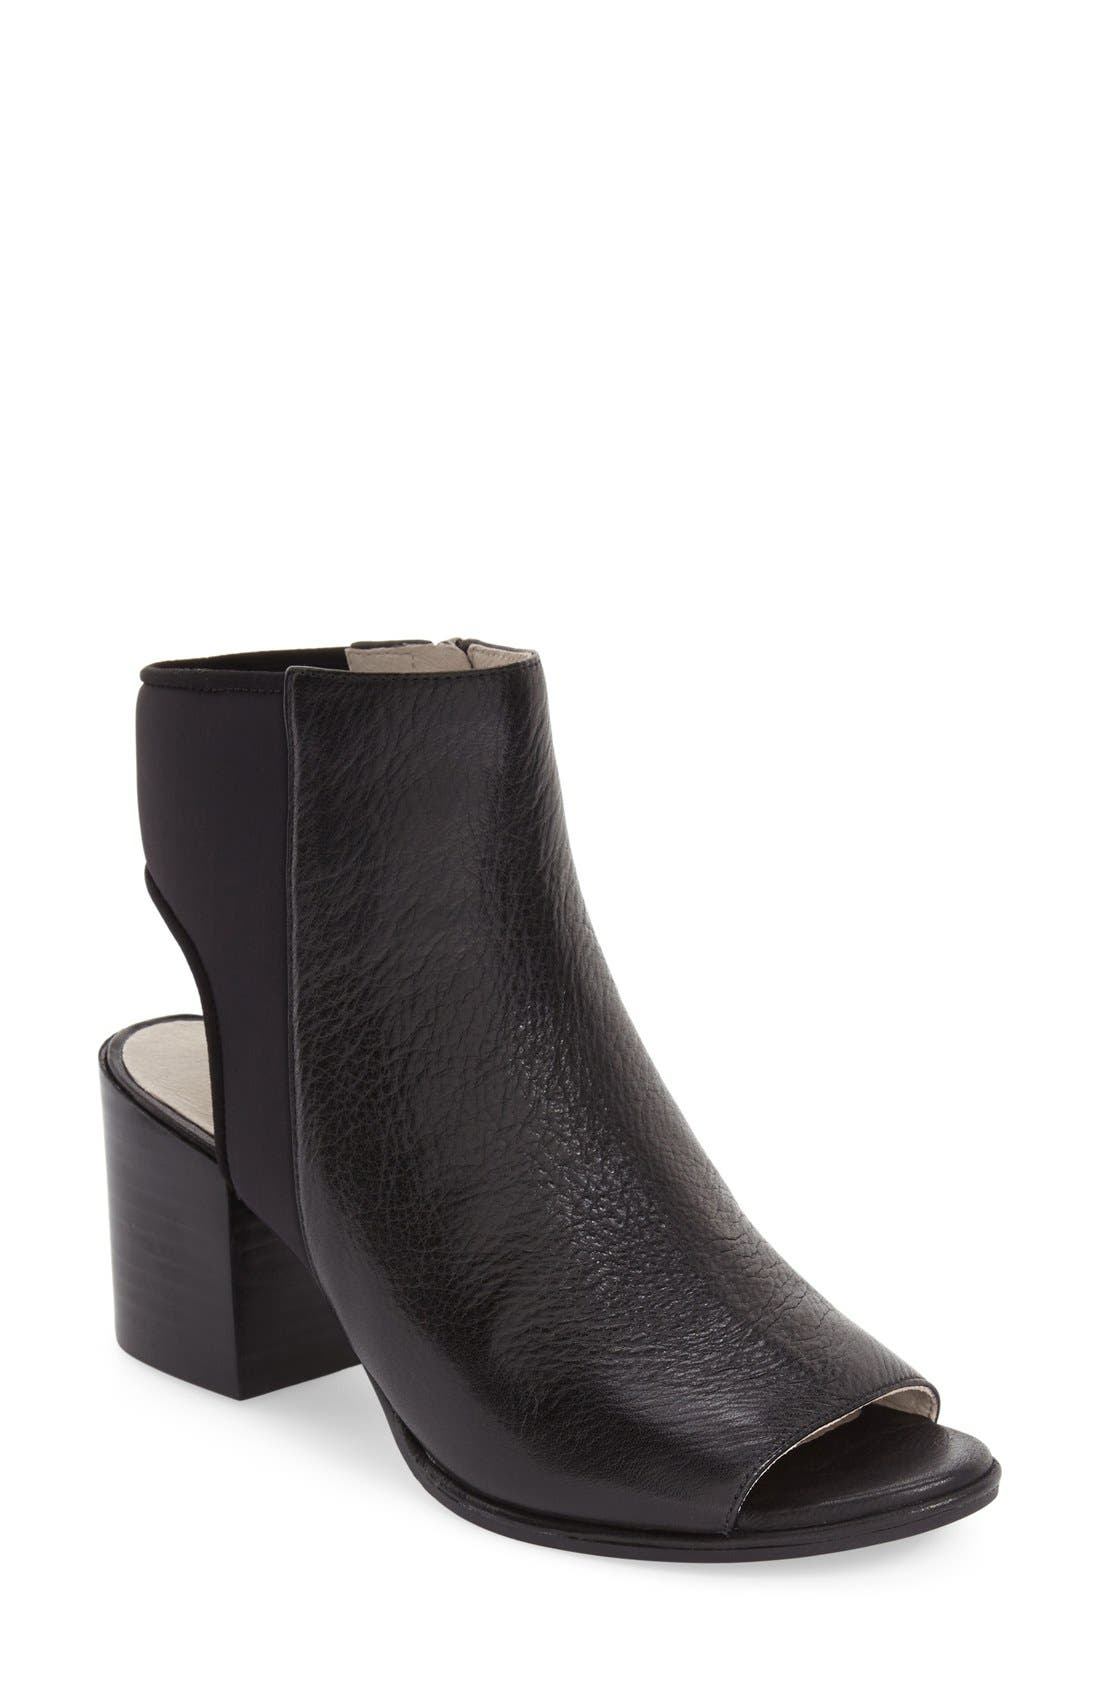 Alternate Image 1 Selected - Kenneth Cole New York 'Charlo' Open Toe Bootie (Women)